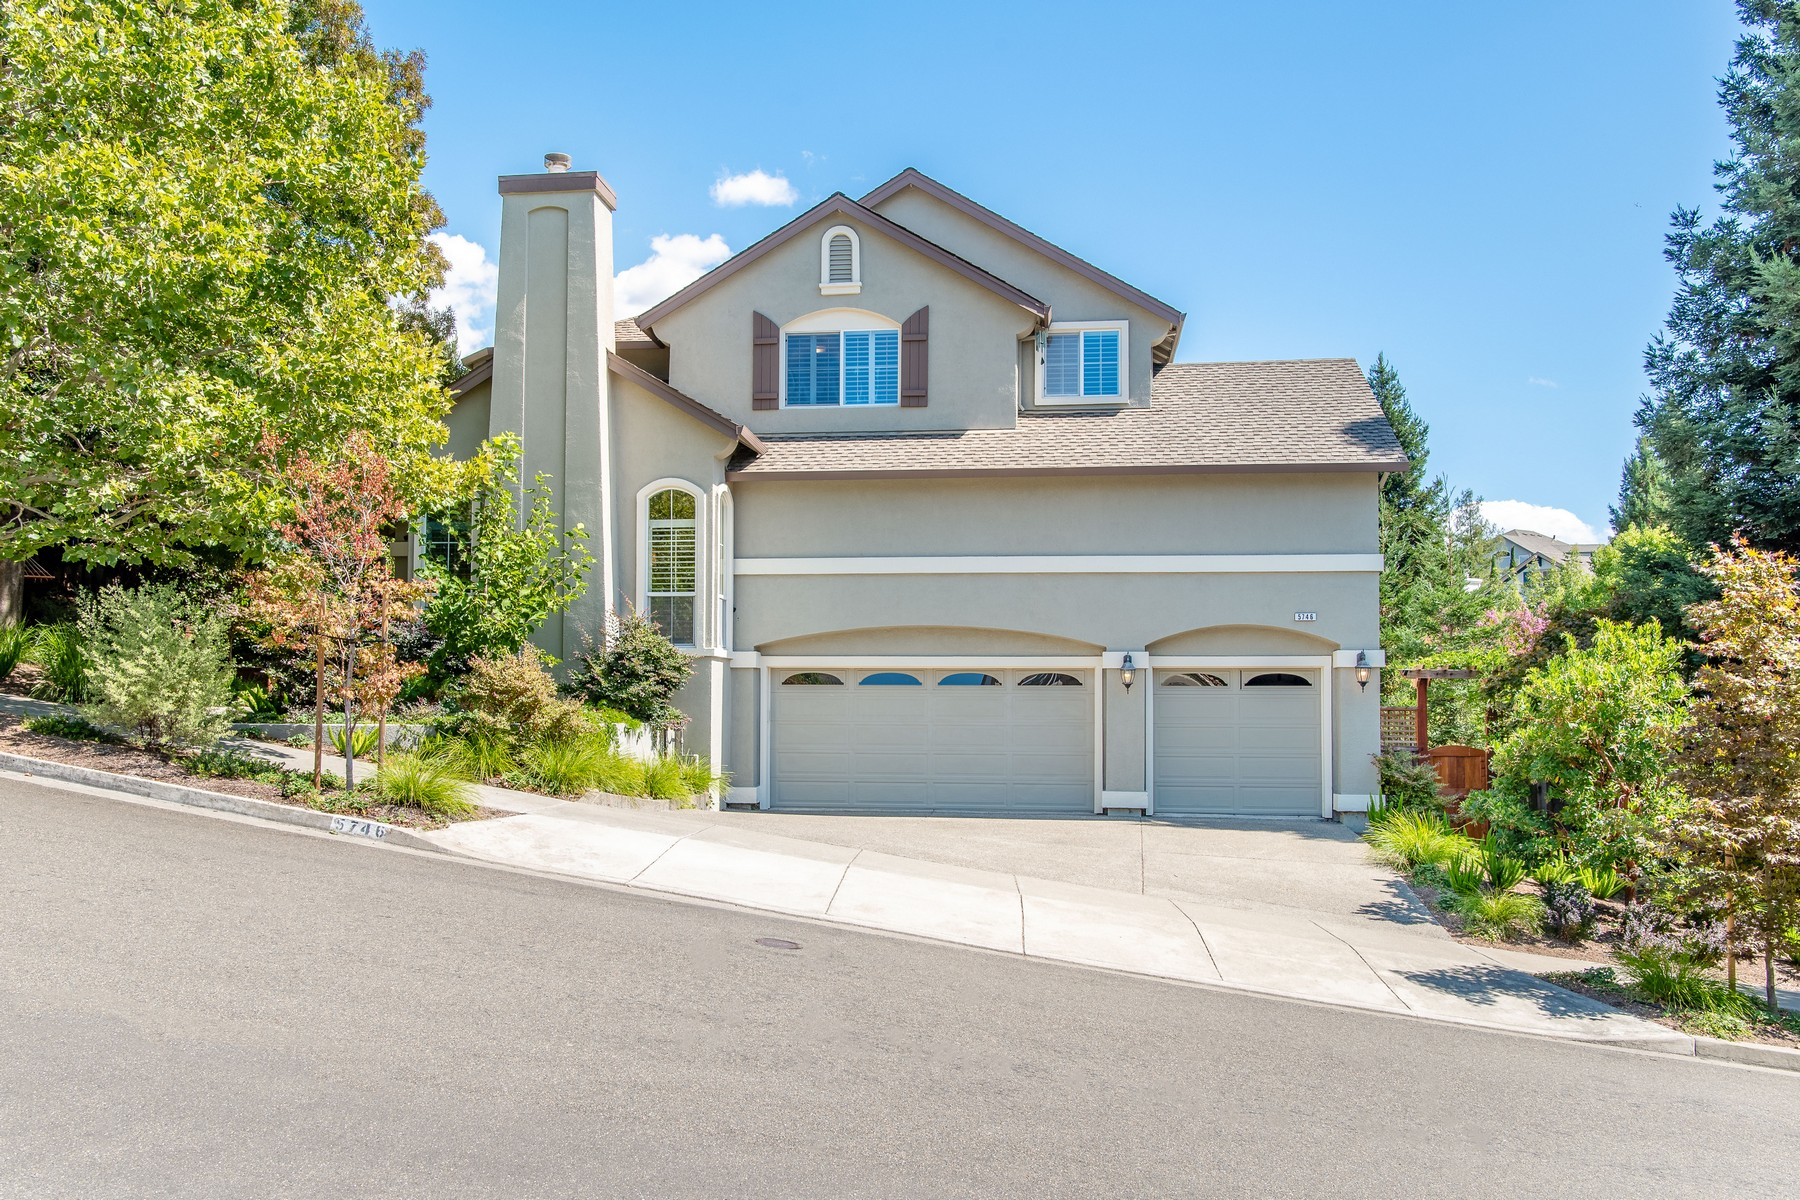 Single Family Homes for Sale at Stunning Skyhawk Home 5746 Owls Nest Drive Santa Rosa, California 95409 United States